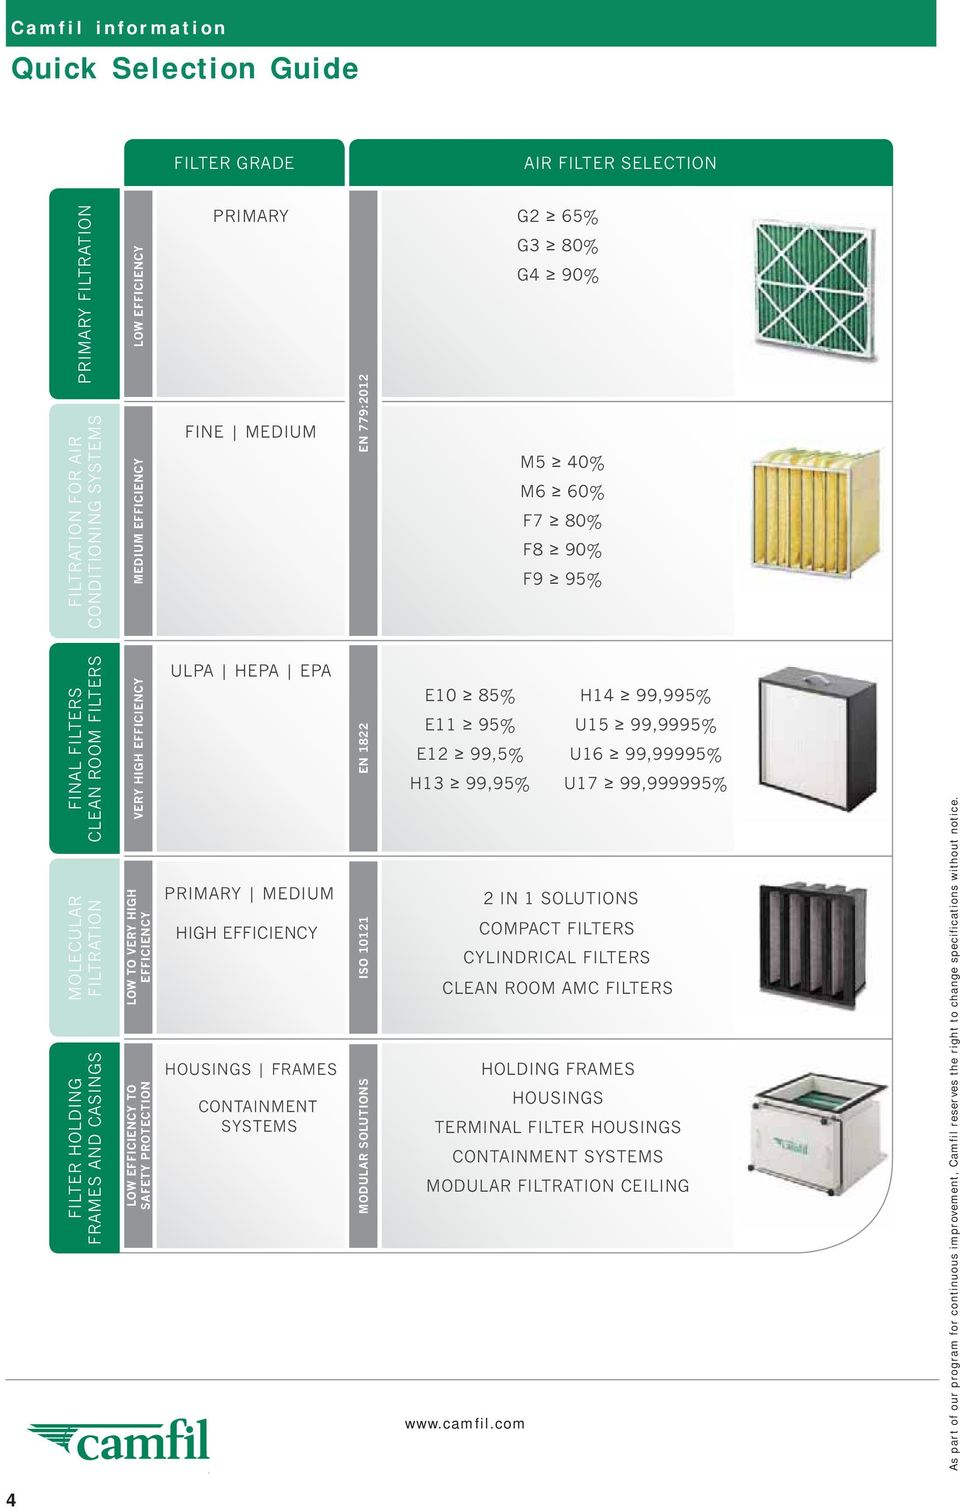 SAFETY PROTECTION ULPA HEPA EPA PRIMARY MEDIUM HIGH EFFICIENCY HOUSINGS FRAMES CONTAINMENT SYSTEMS EN 1822 ISO 10121 MODULAR SOLUTIONS E10 85% H14 99,995% E11 95% U15 99,9995% E12 99,5% U16